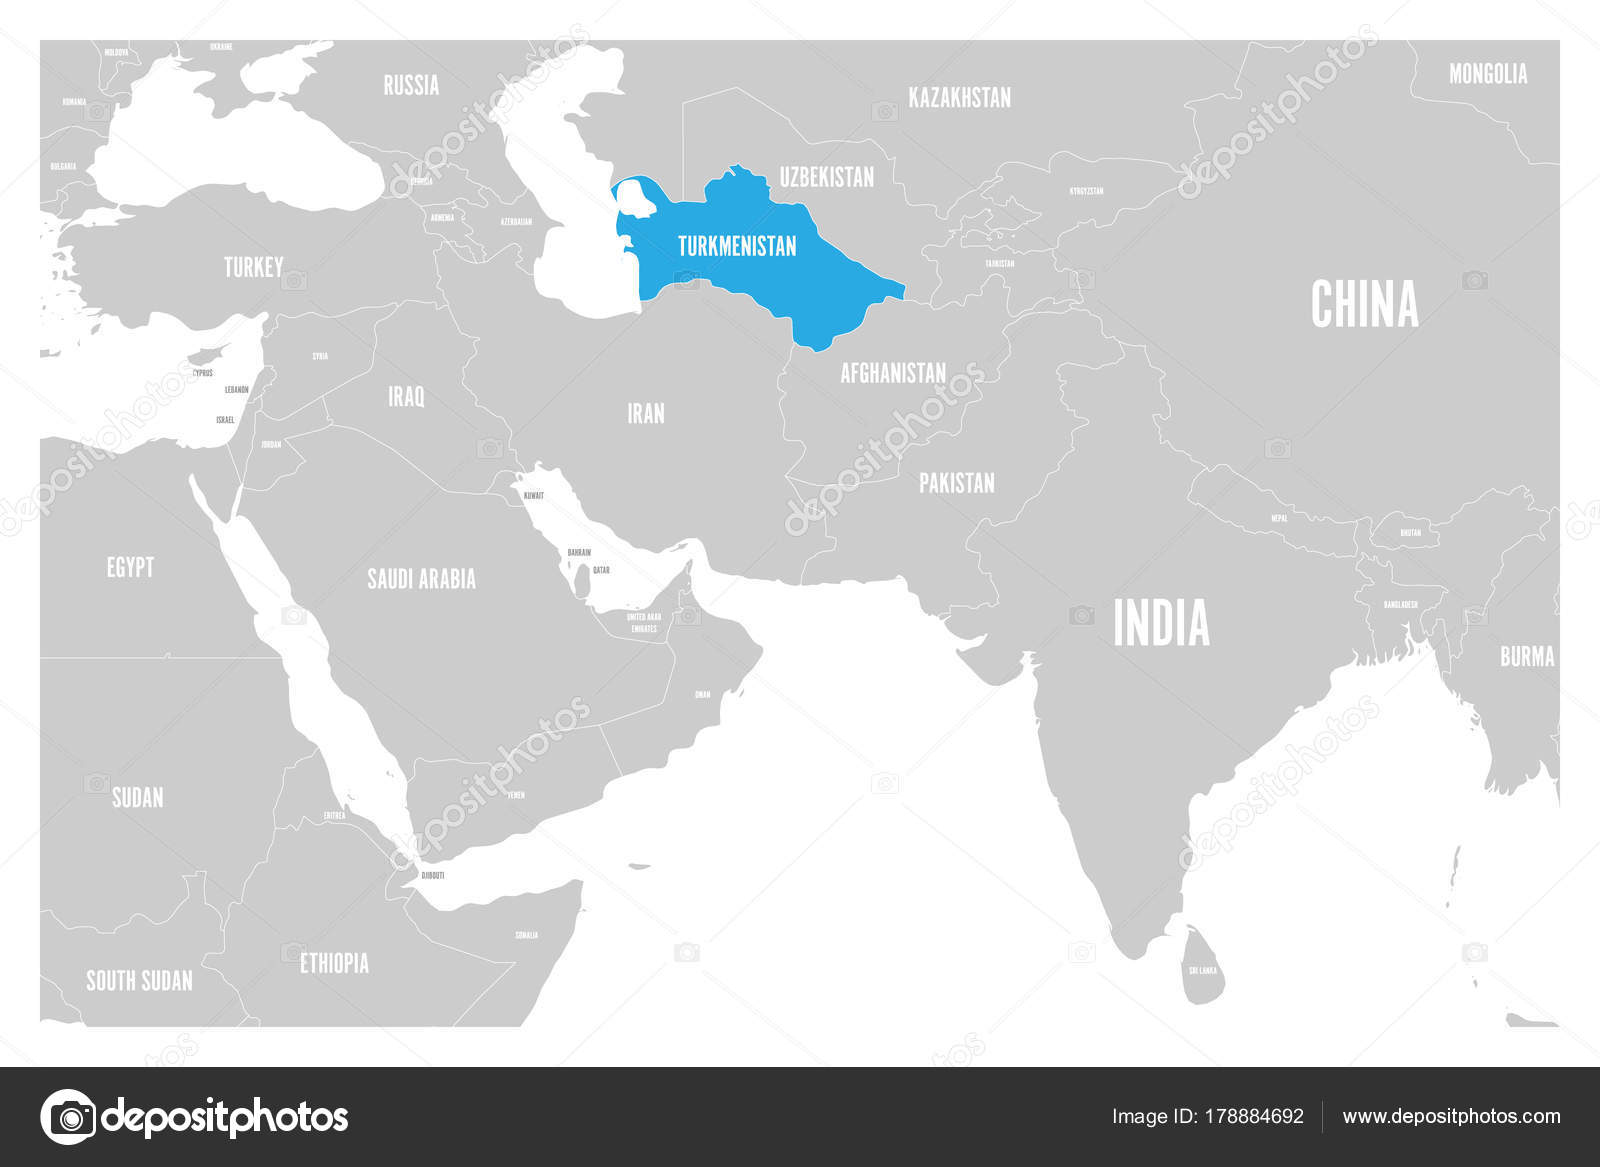 turkmenistan blue marked in political map of south asia and middle east simple flat vector